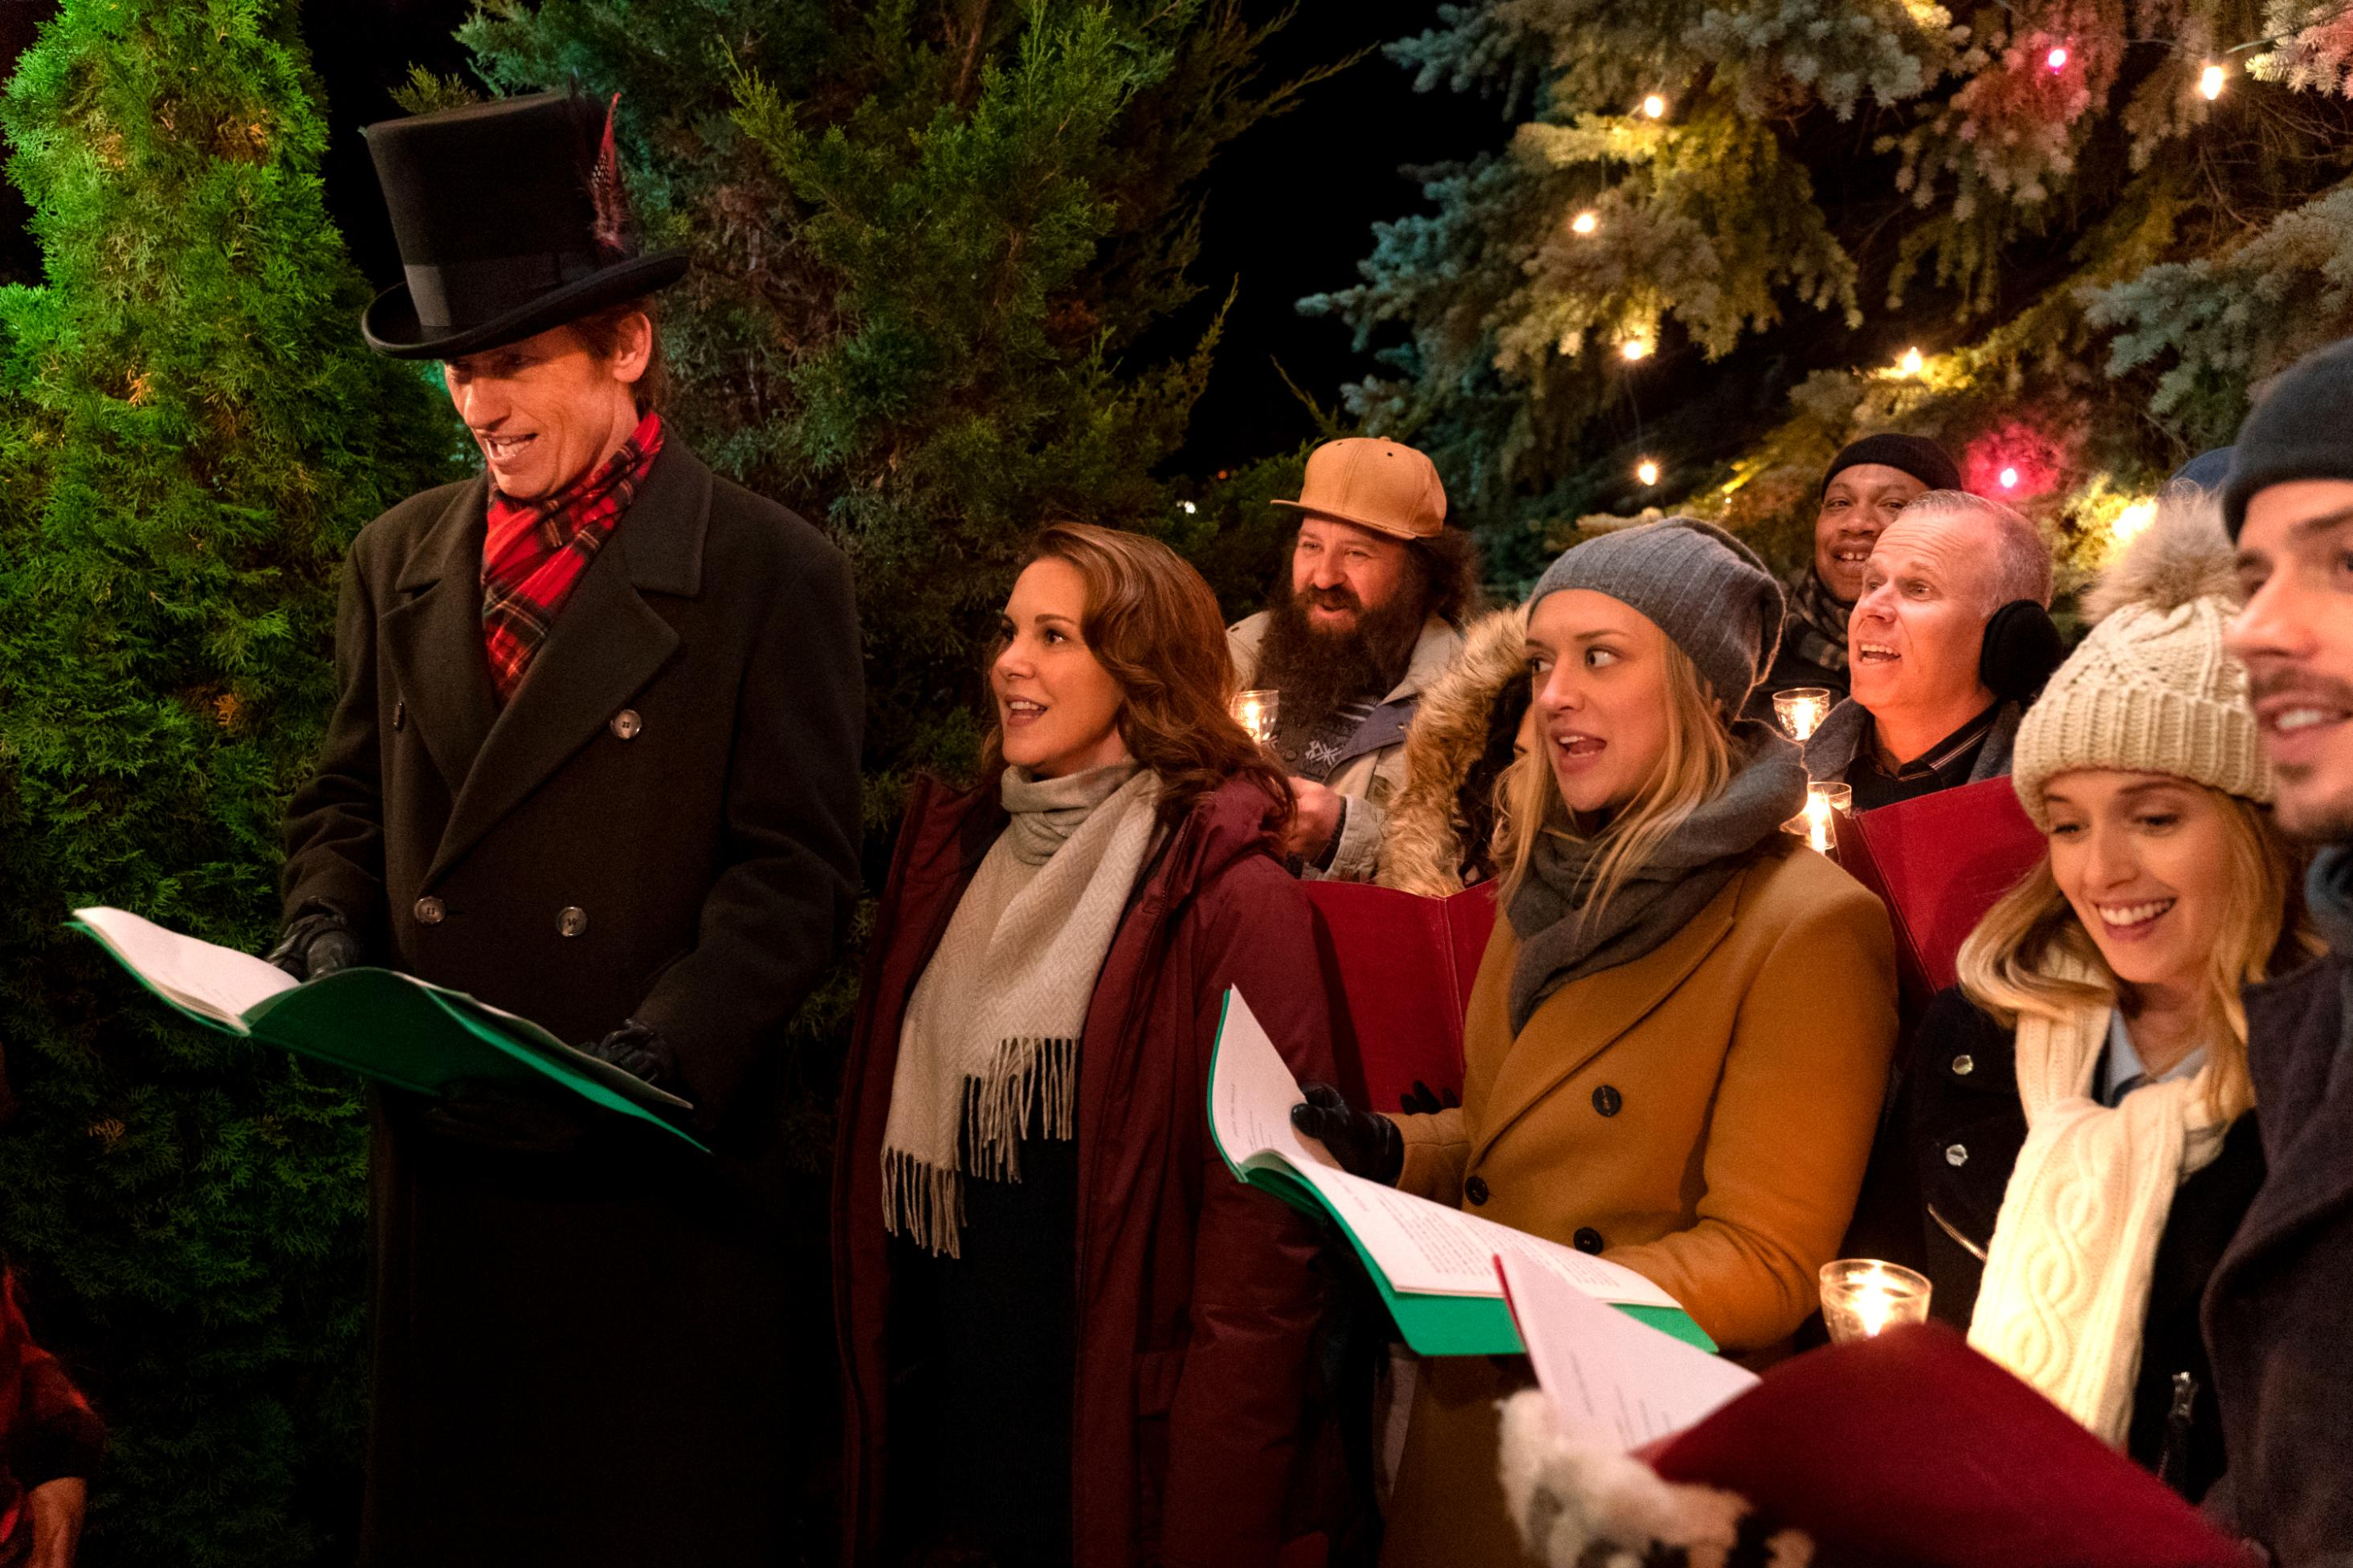 'The Moodys' serves up holiday comedy that's mostly ho-ho-hum